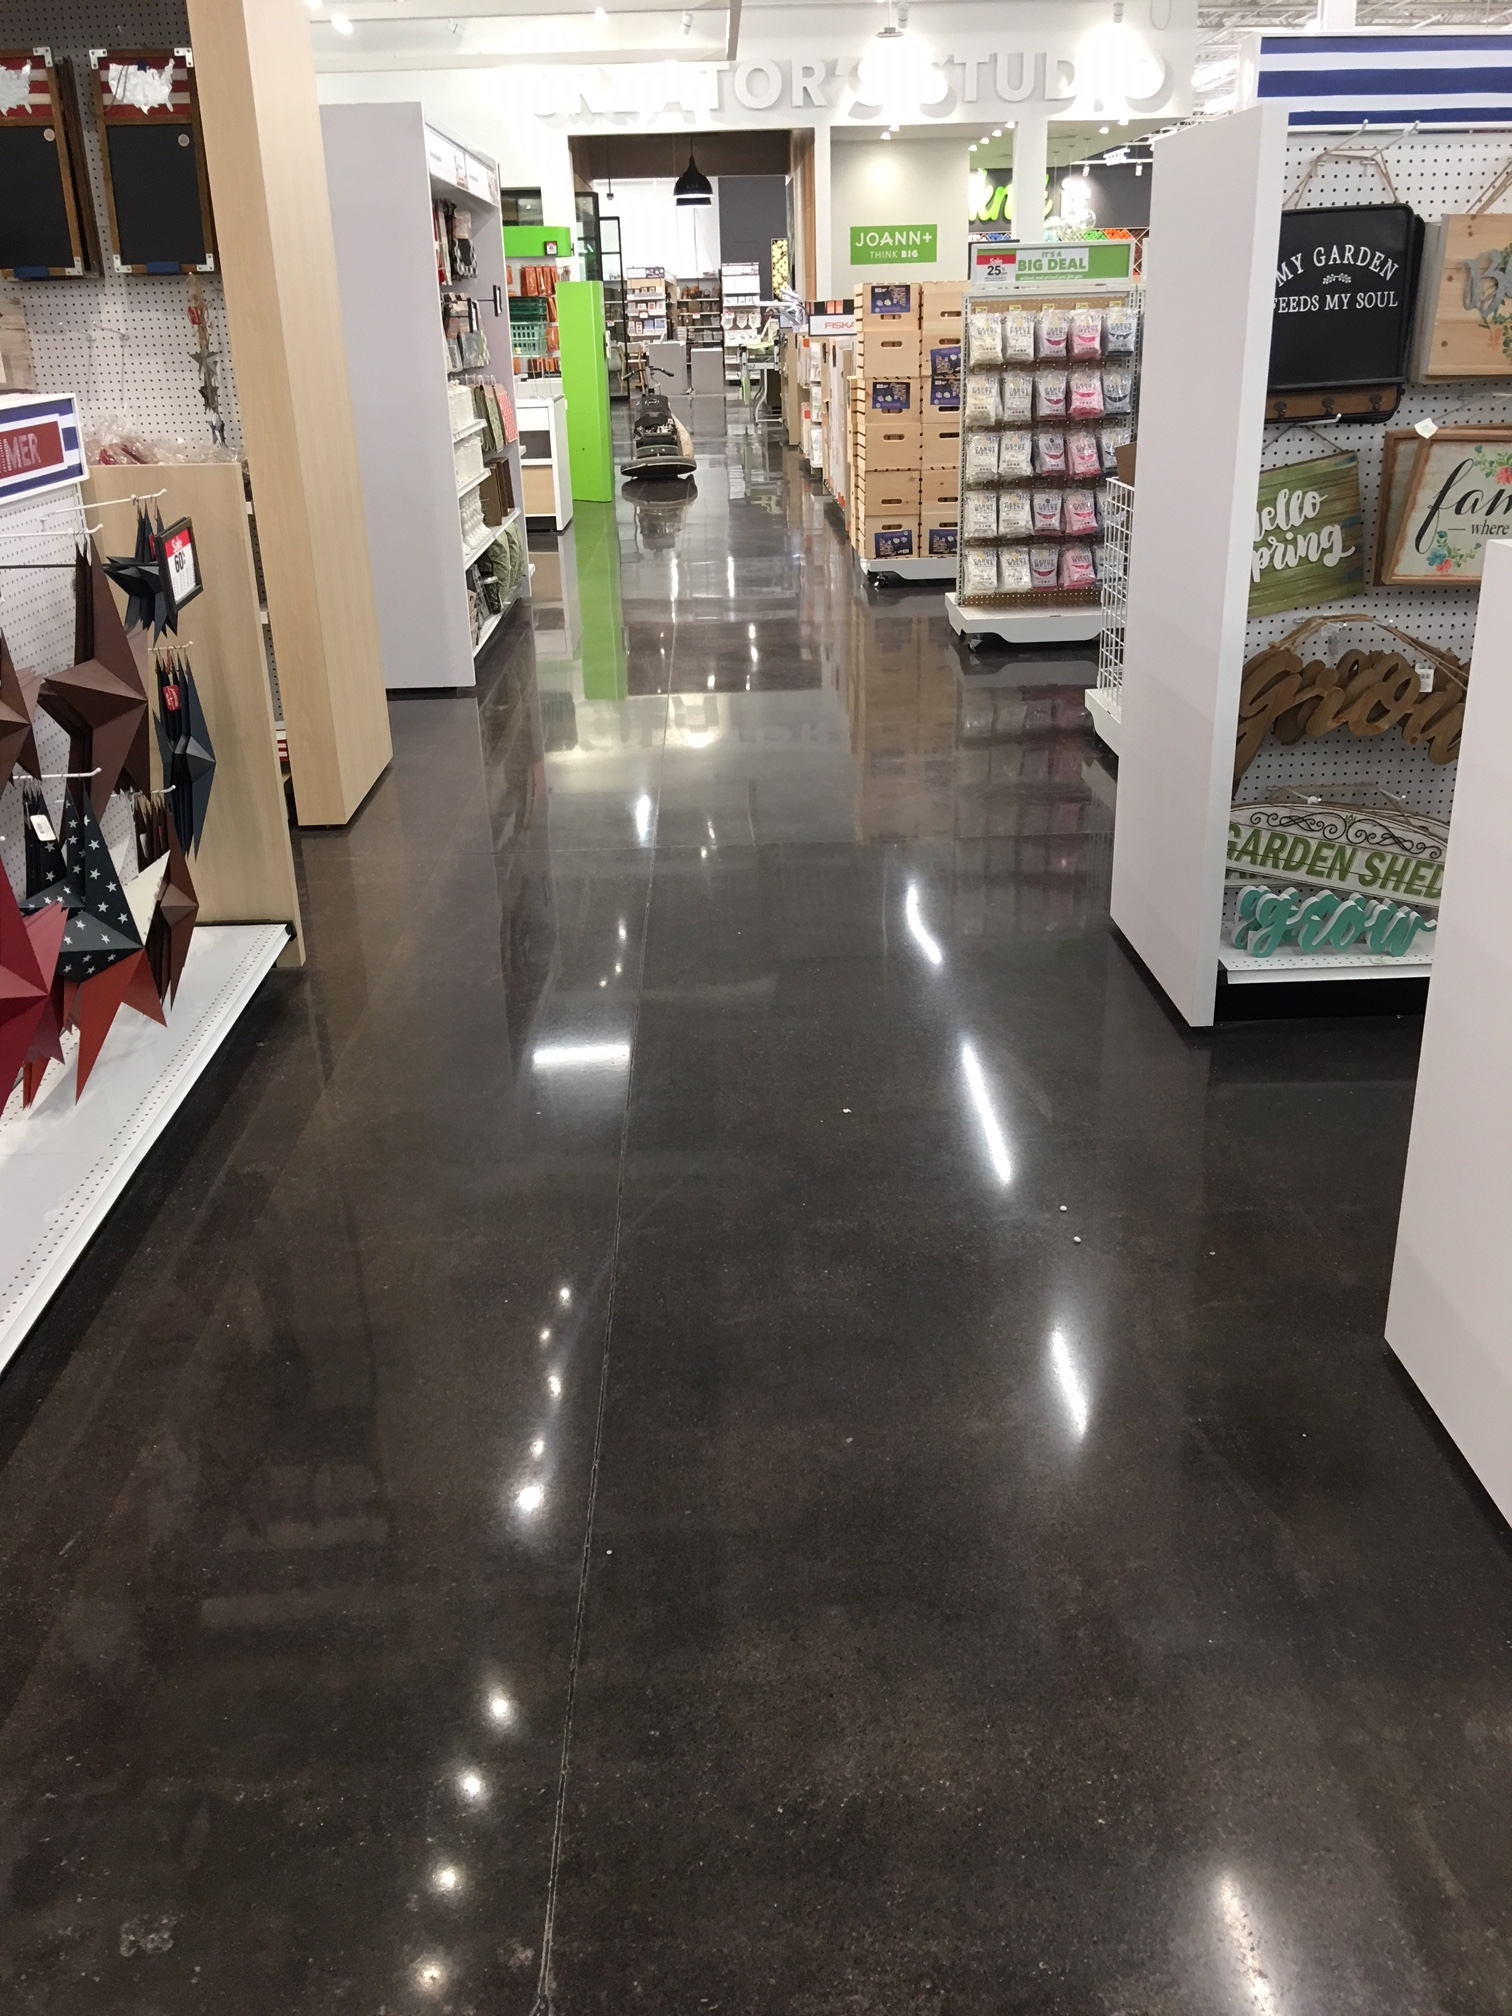 A polished concrete aisle in a store.